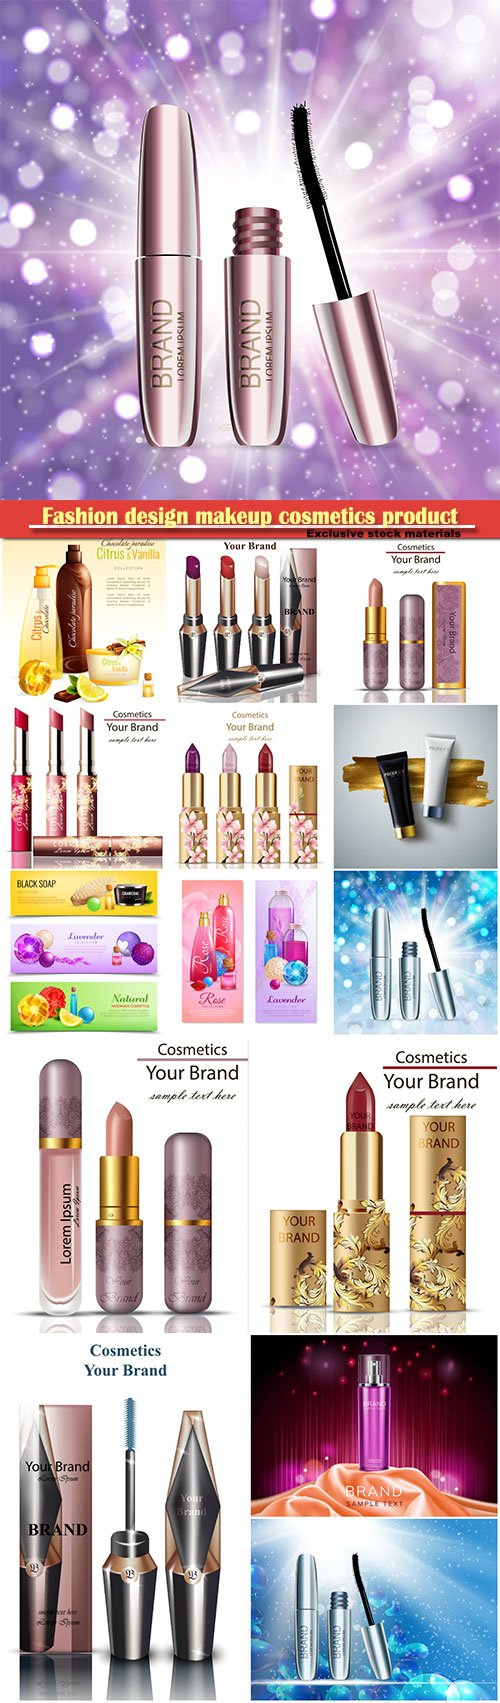 Fashion design makeup cosmetics product, 3D realistic vector illustration